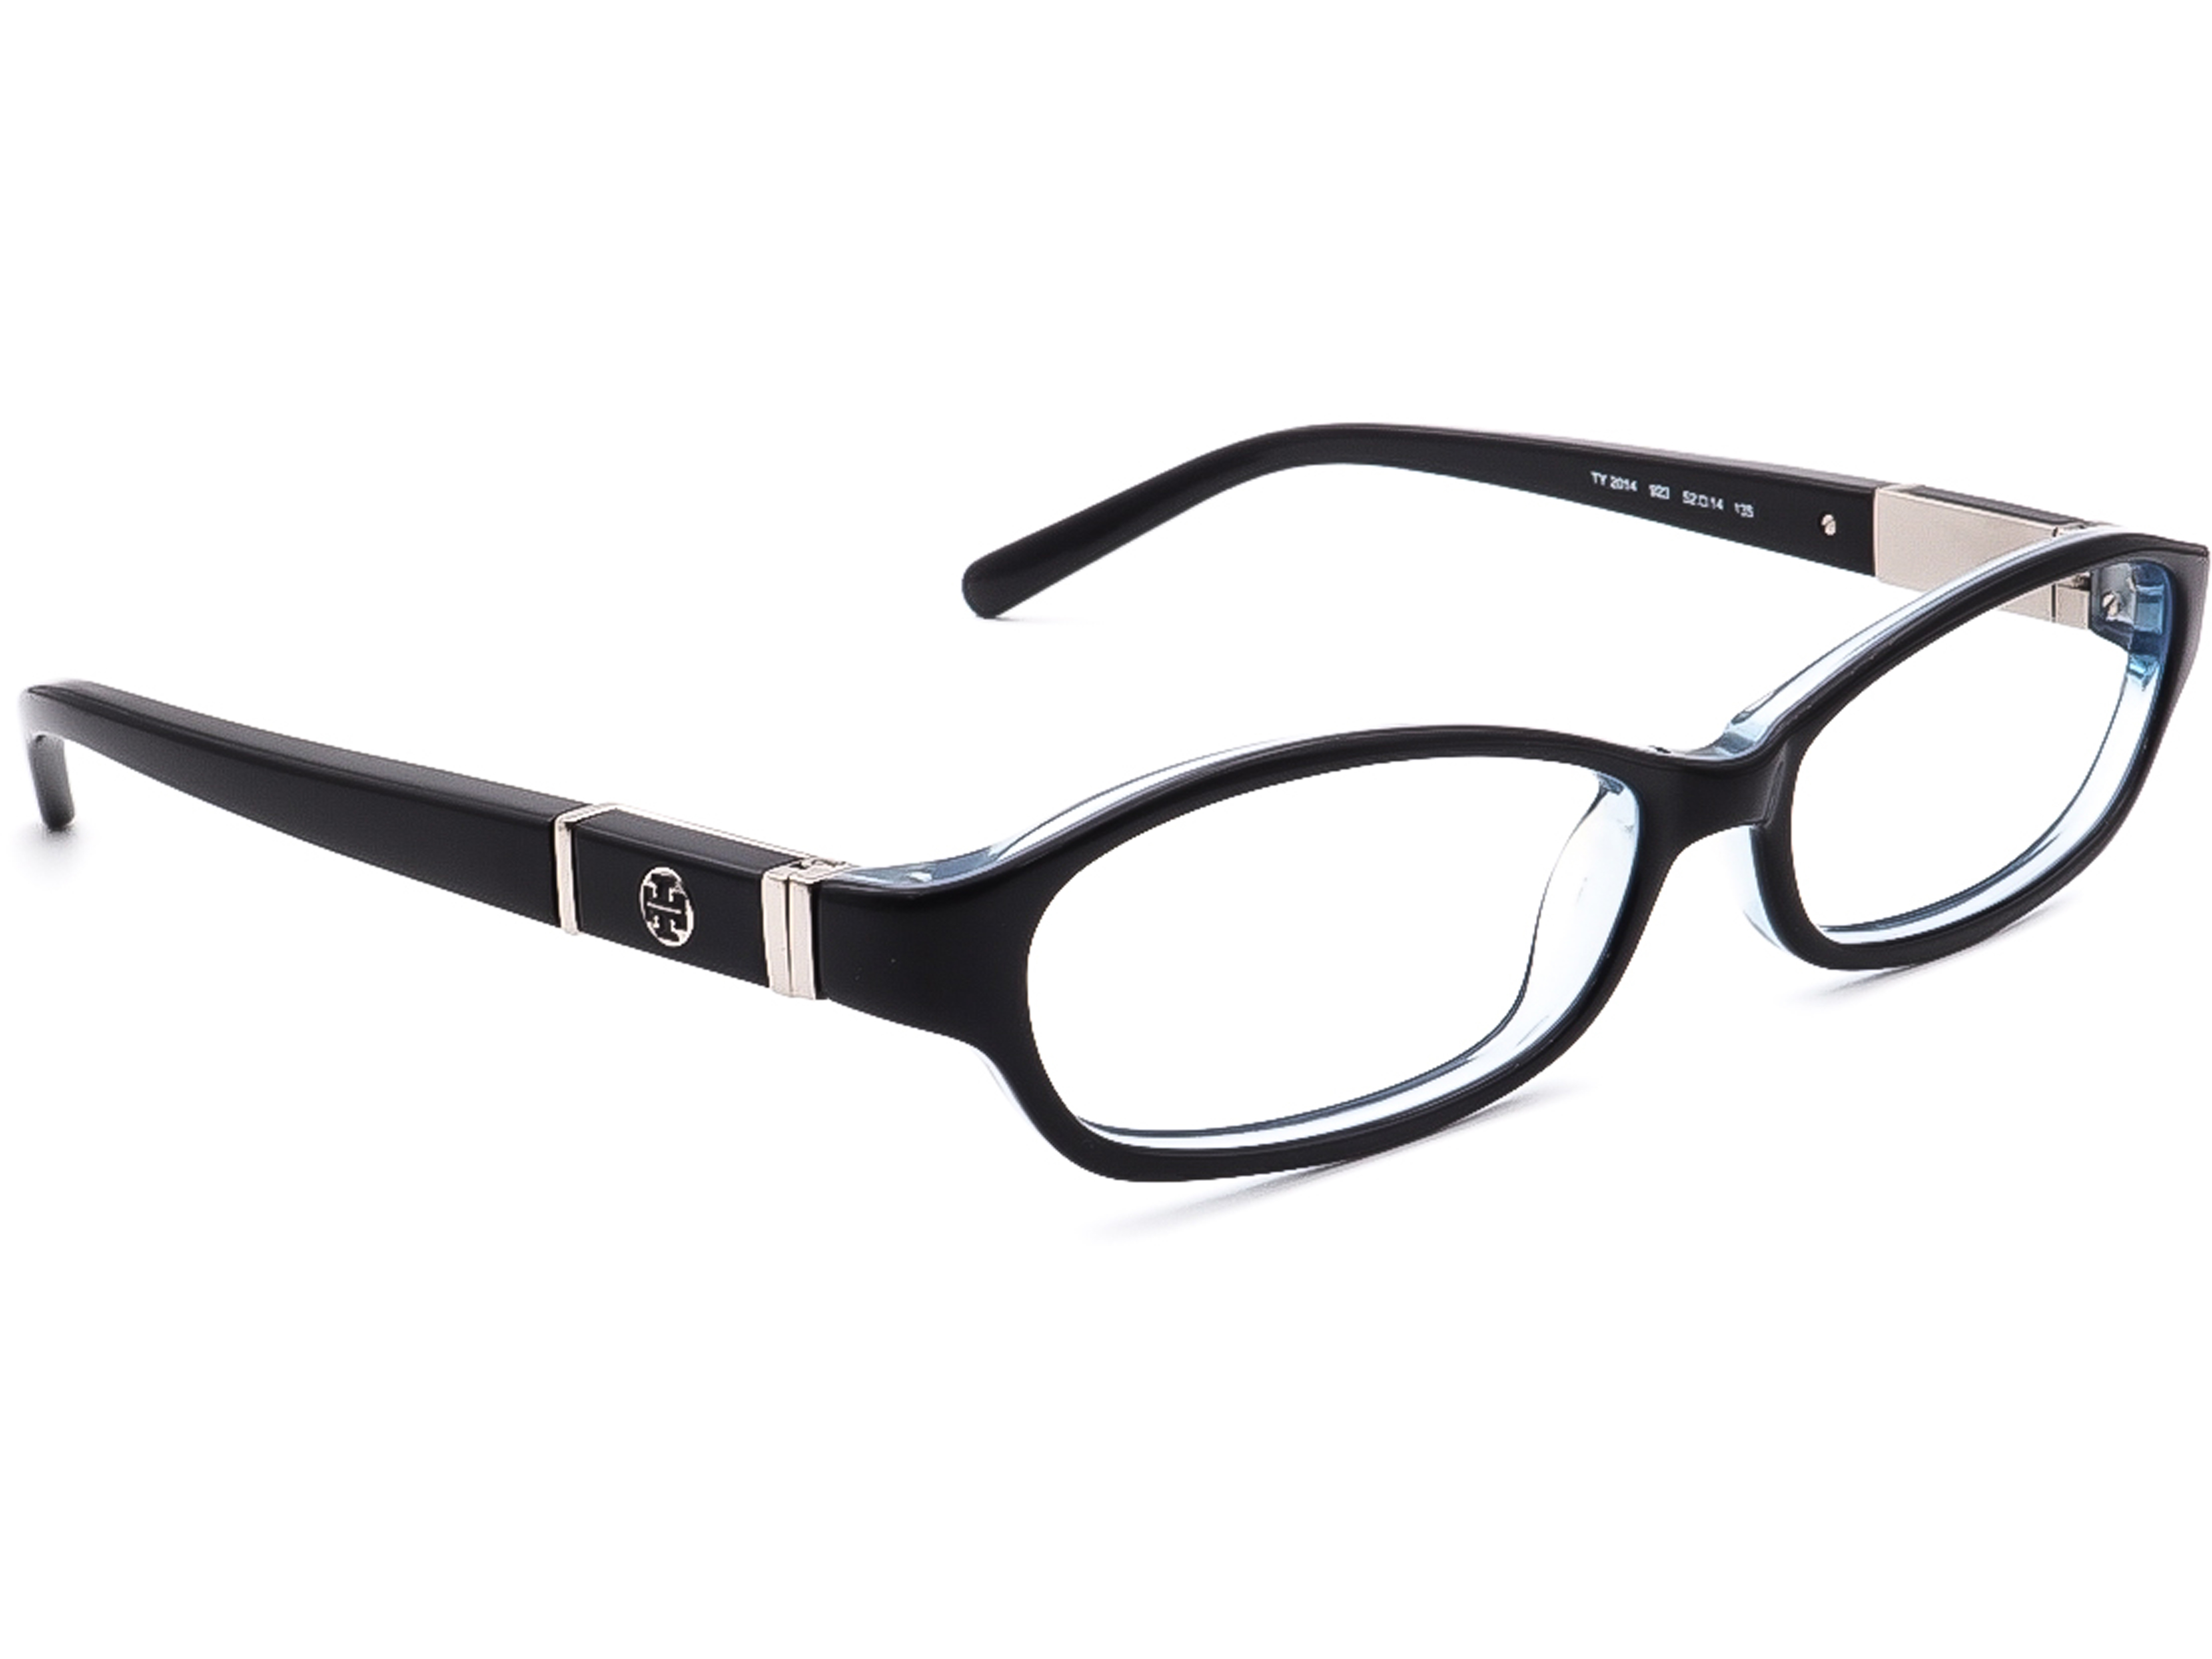 Tory Burch TY 2014 923 Eyeglasses